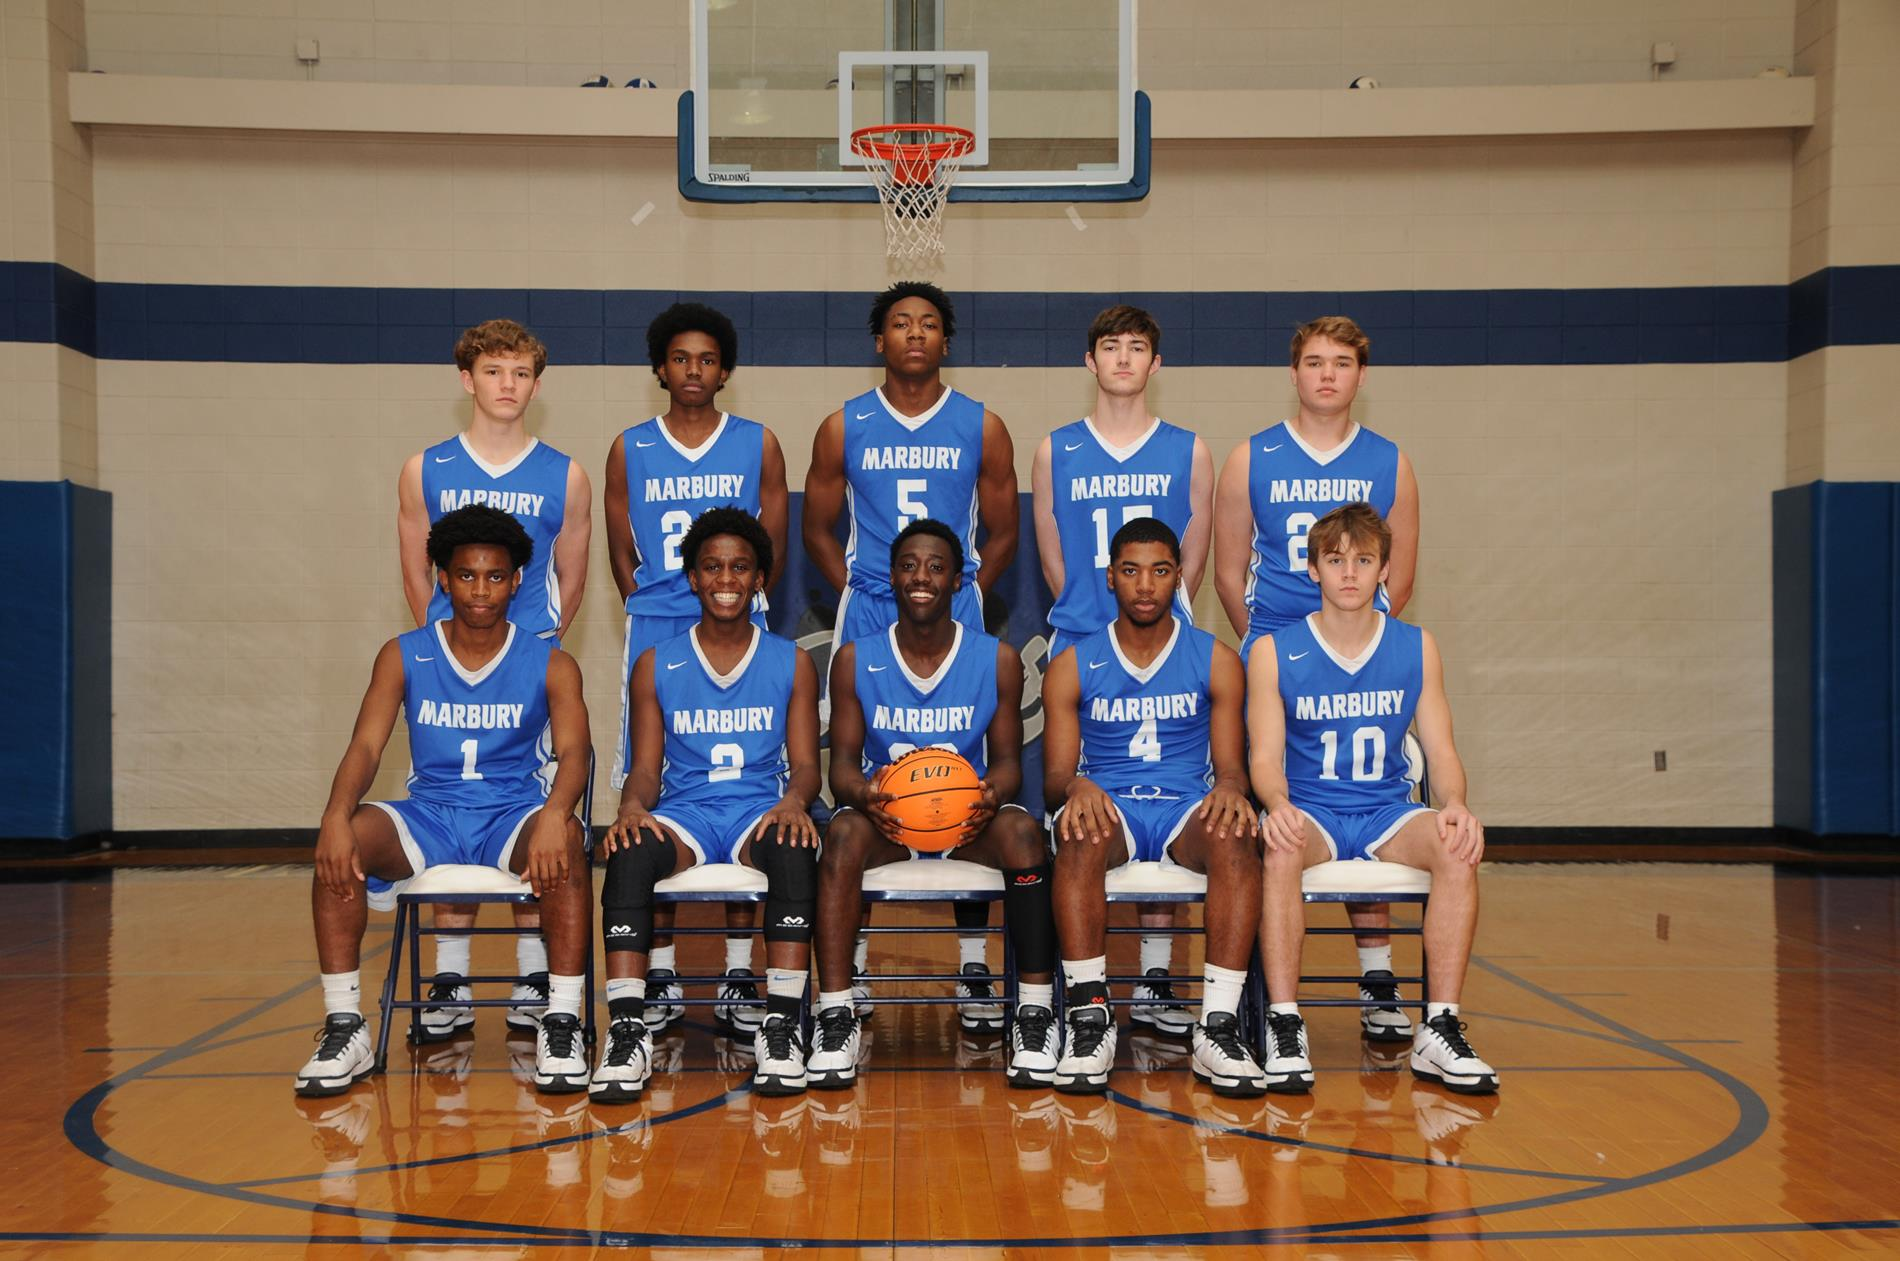 2020-2021 Varsity Boys Basketball